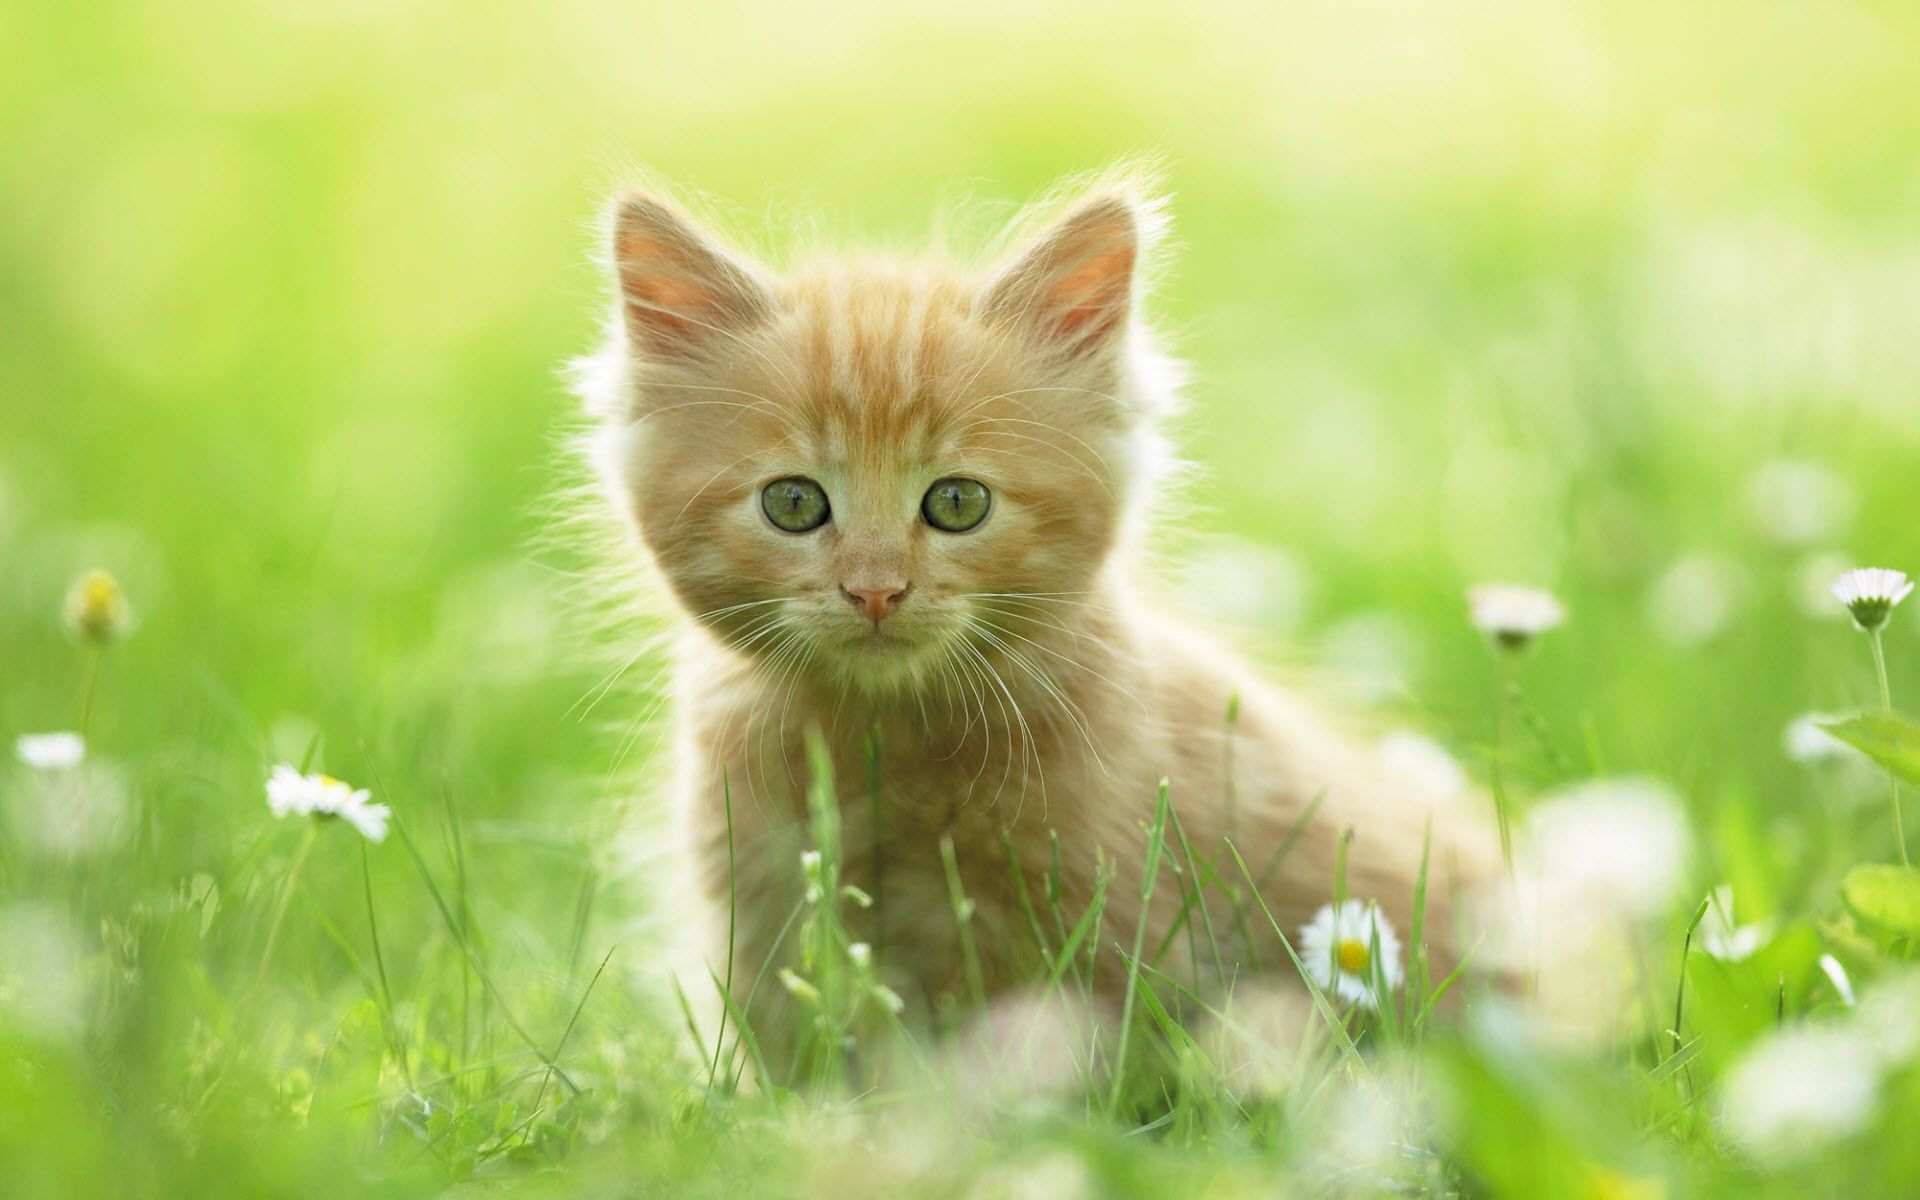 Free Cute Kitten Wallpapers In 2020 Kittens Cutest Kitten Wallpaper Kitten Pictures